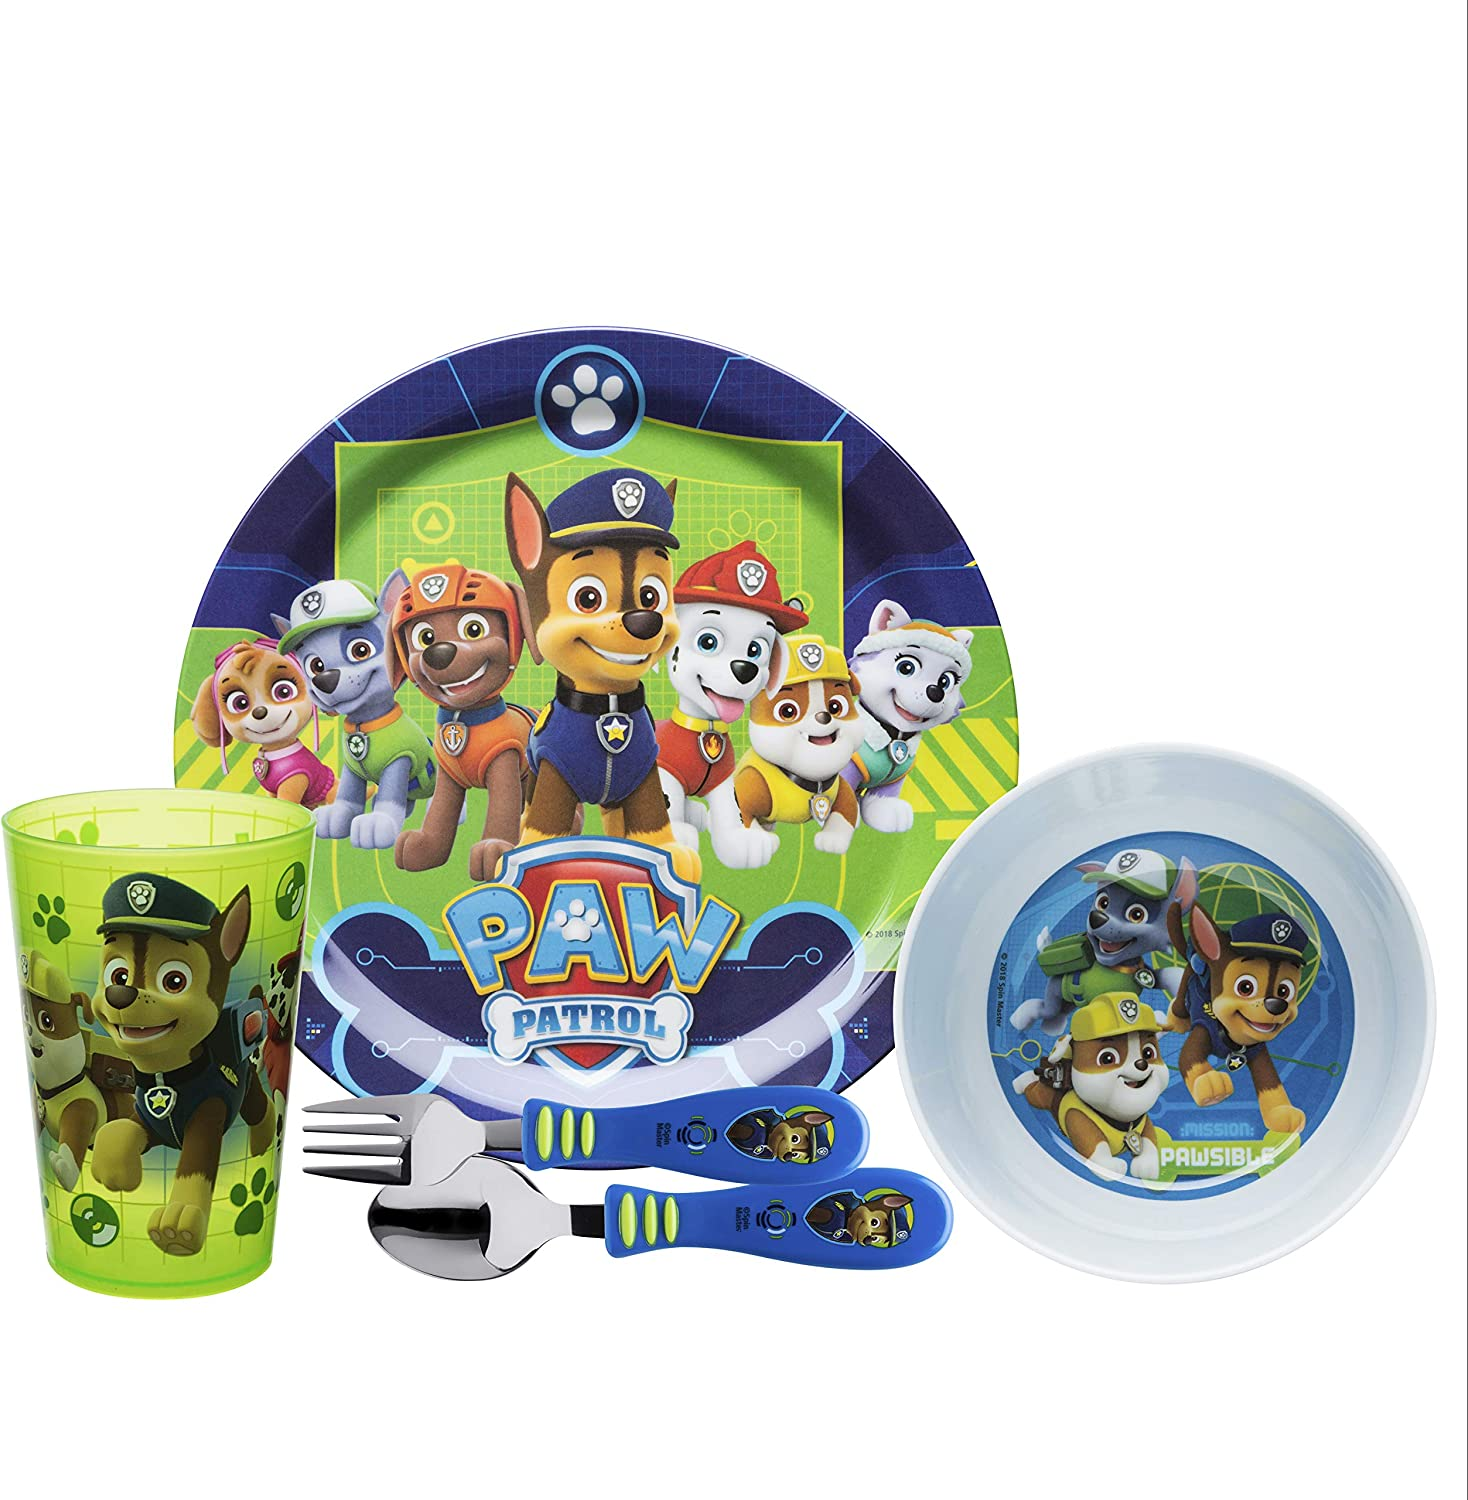 Zak Designs Paw Patrol Kids Dinnerware Set Includes Plate, Bowl, Tumbler and Utensil Tableware, Made of Durable Material and Perfect for Kids (Chase & Rubble, 5 Piece Set, BPA-Free)